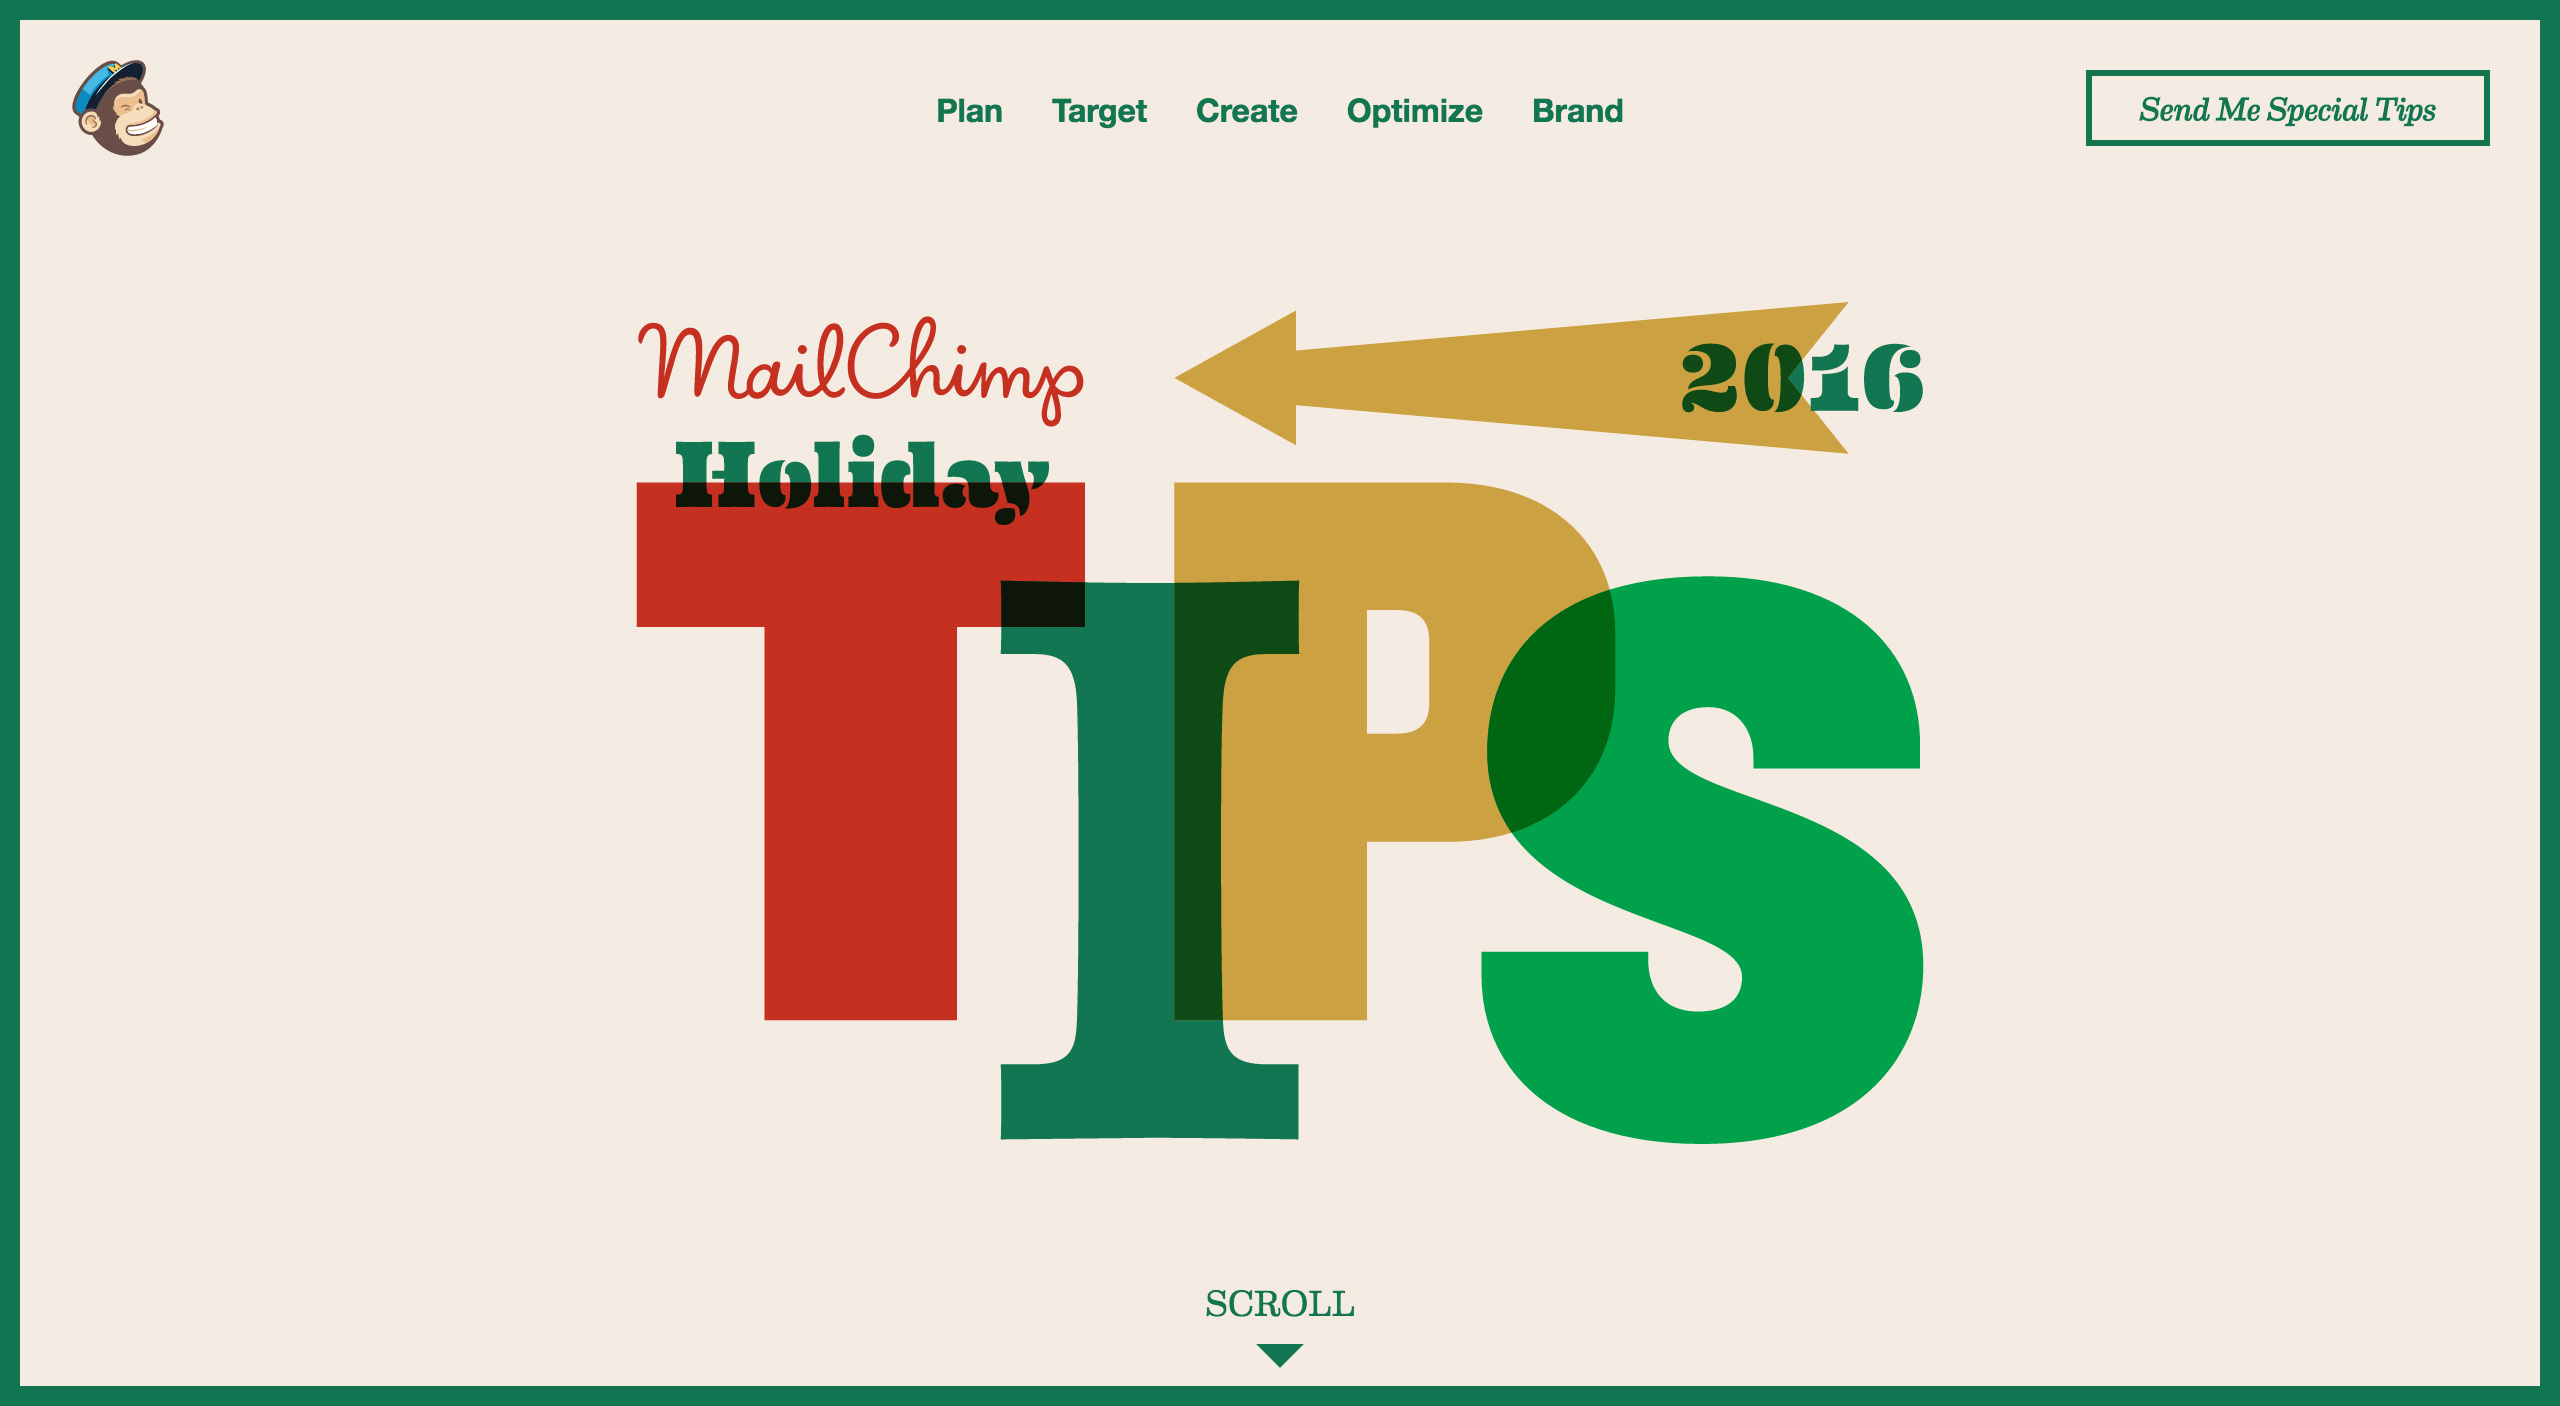 MailChimp Holiday Tips 2016 Big Screenshot